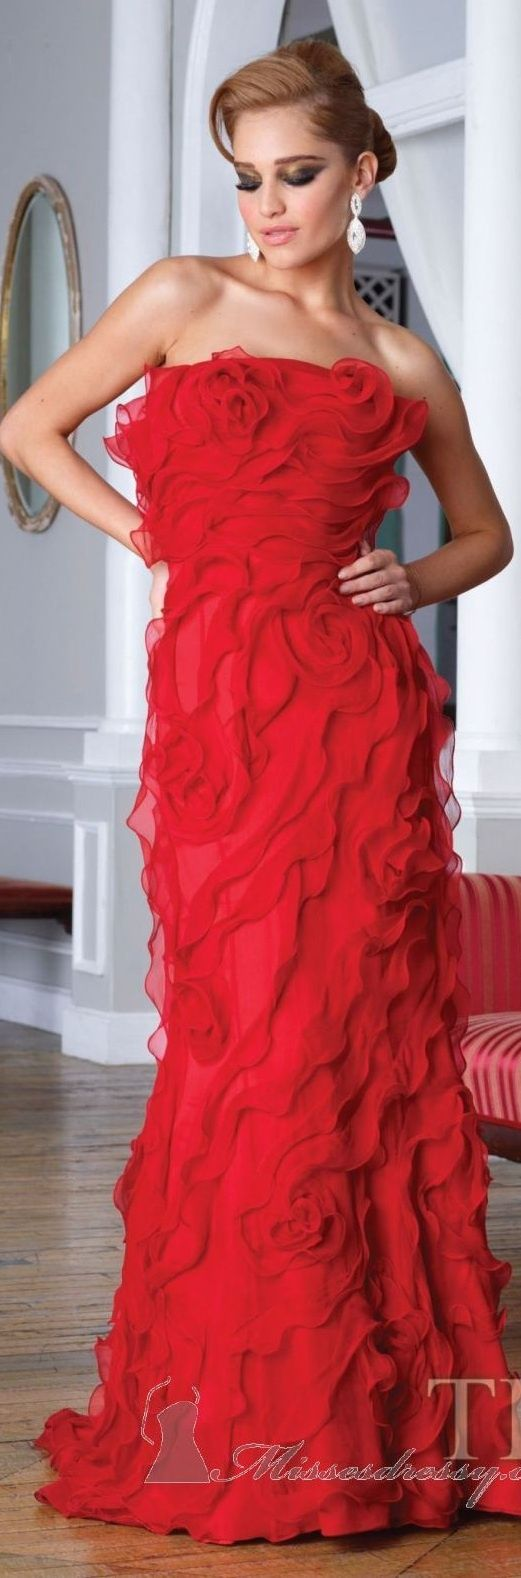 Red ball gown wedding dress  Terani Dress E  Ruffles Gowns and Tony bowls